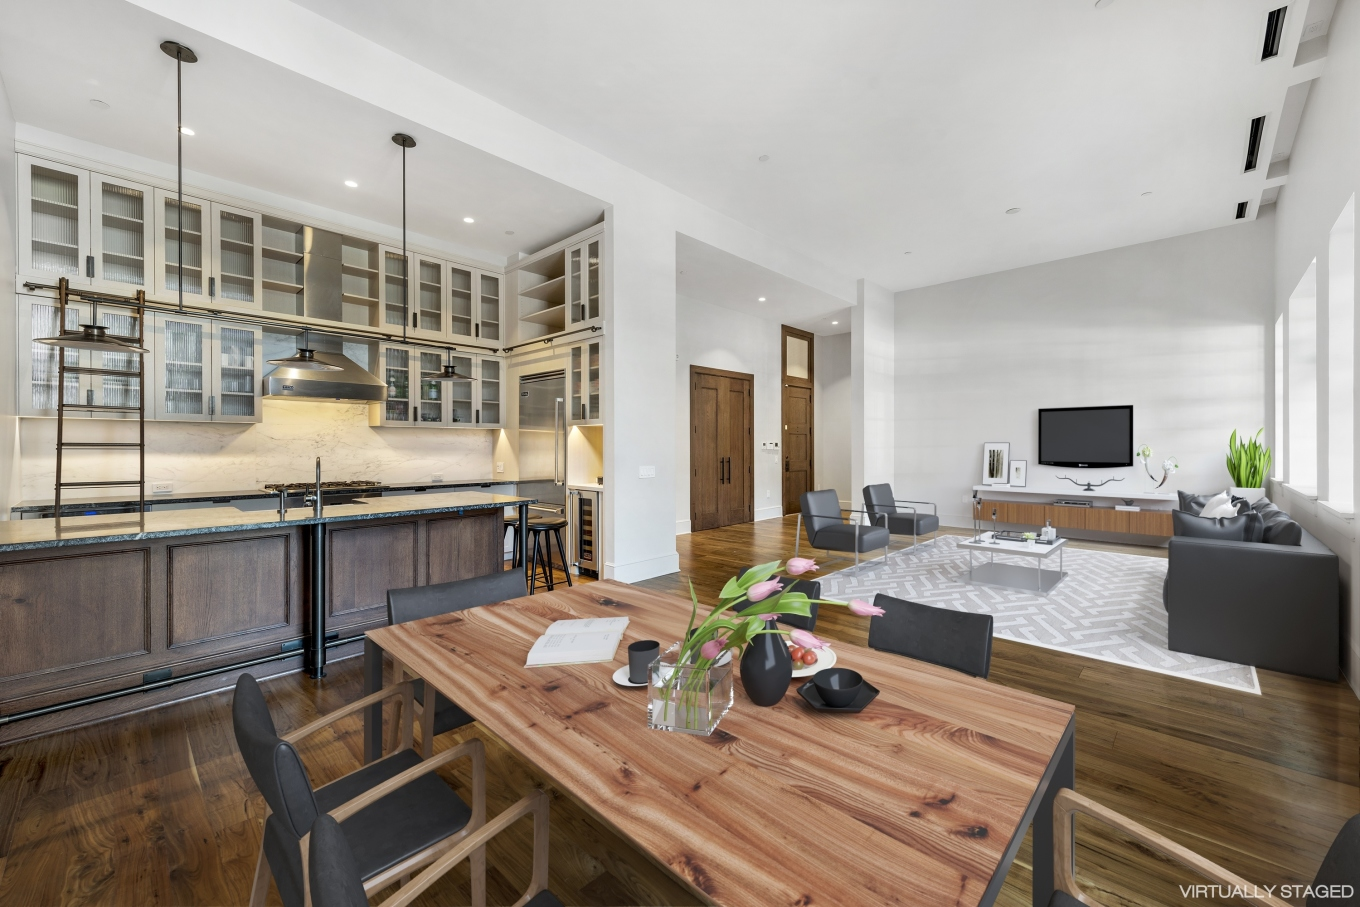 Apartment for sale at 520 West 45th Street, Apt 1-B